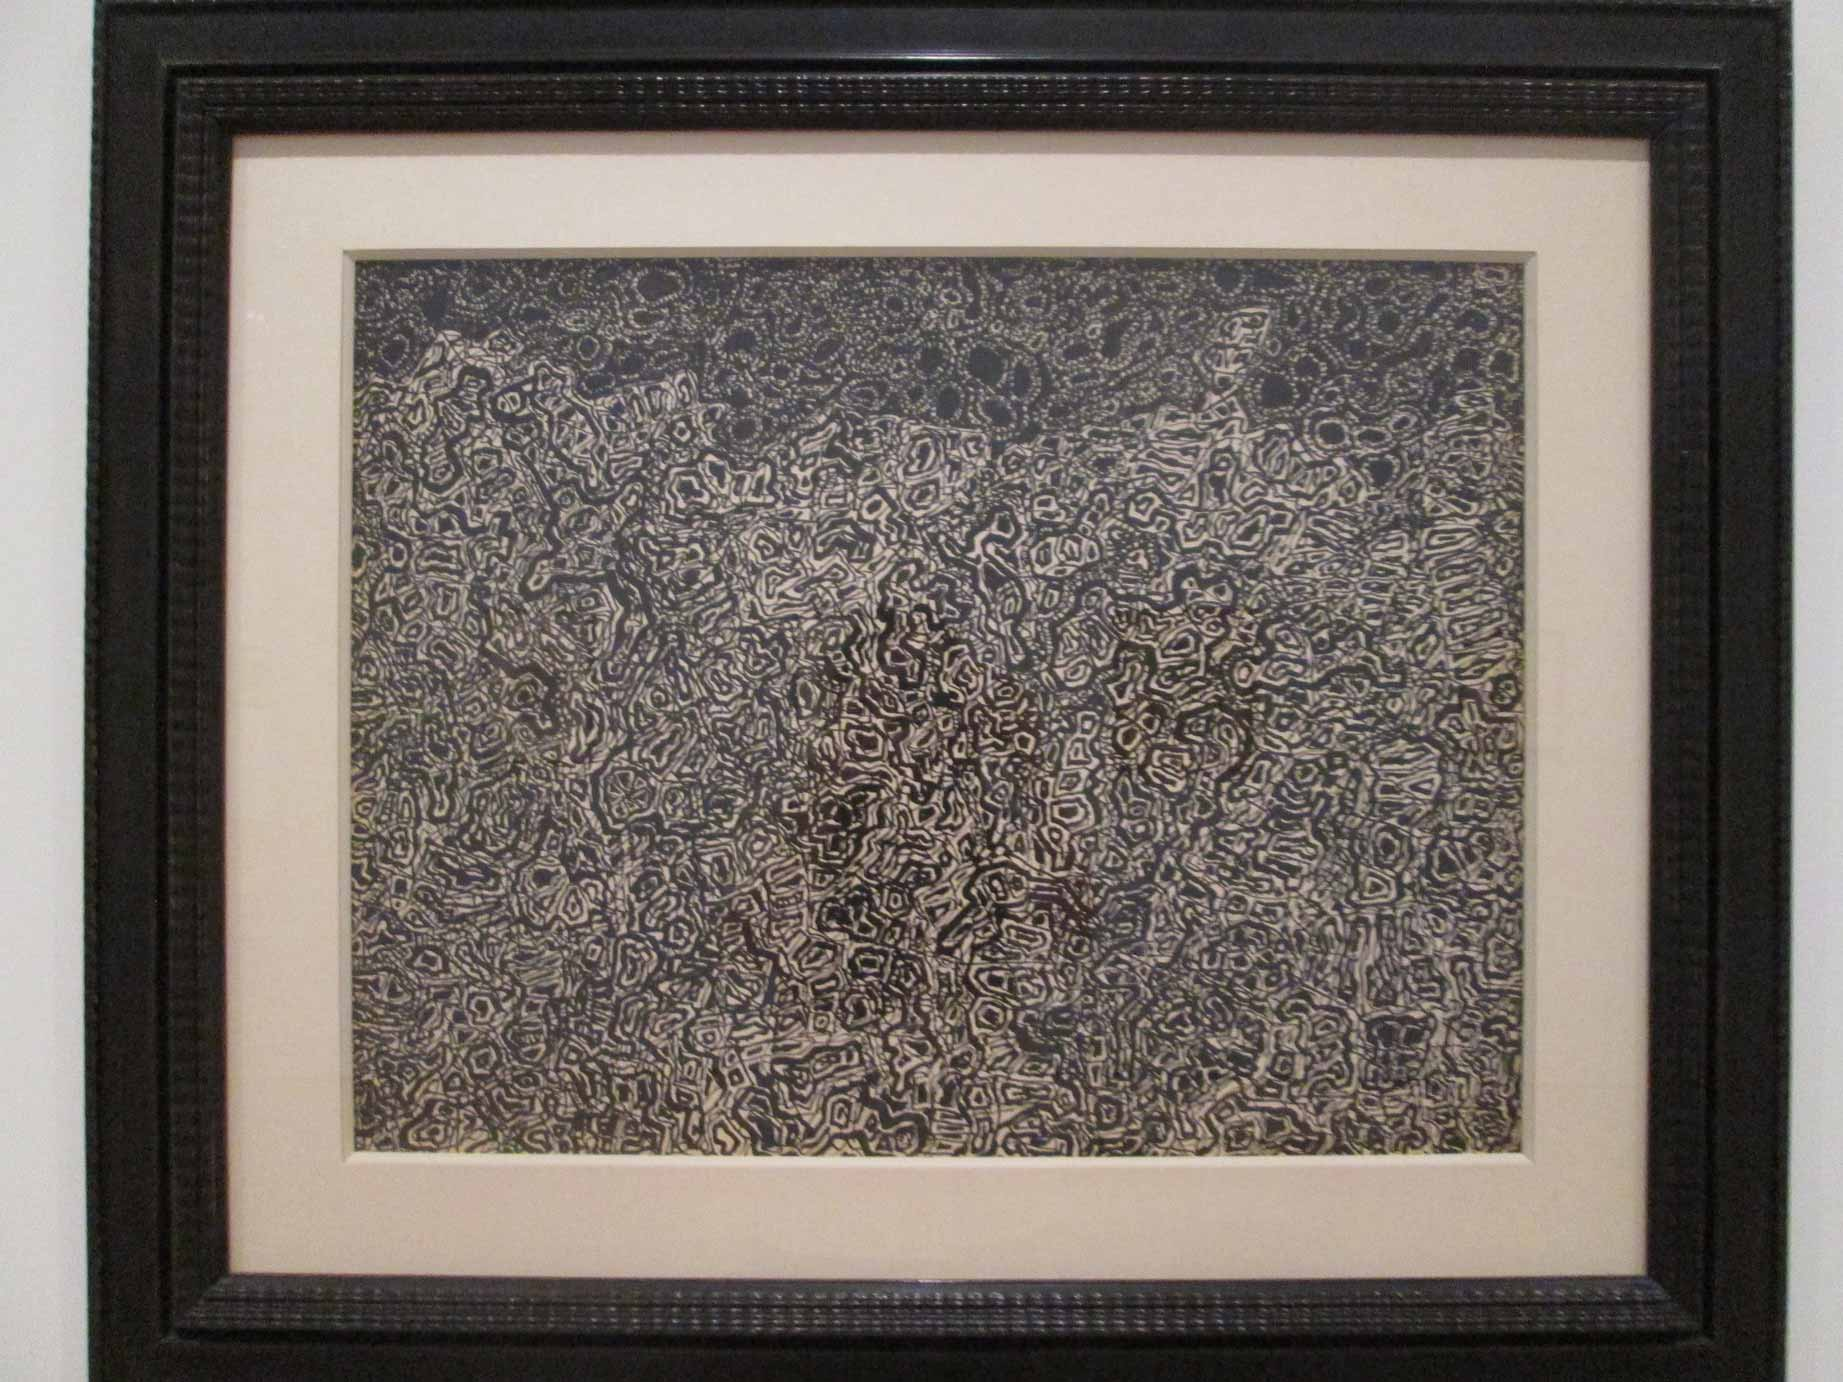 Jean-Dubuffet,-Paysage-au-Lapin-----(Landscape-with-Rabbit),-pen-and-reed-pen-and-india-ink,-1952